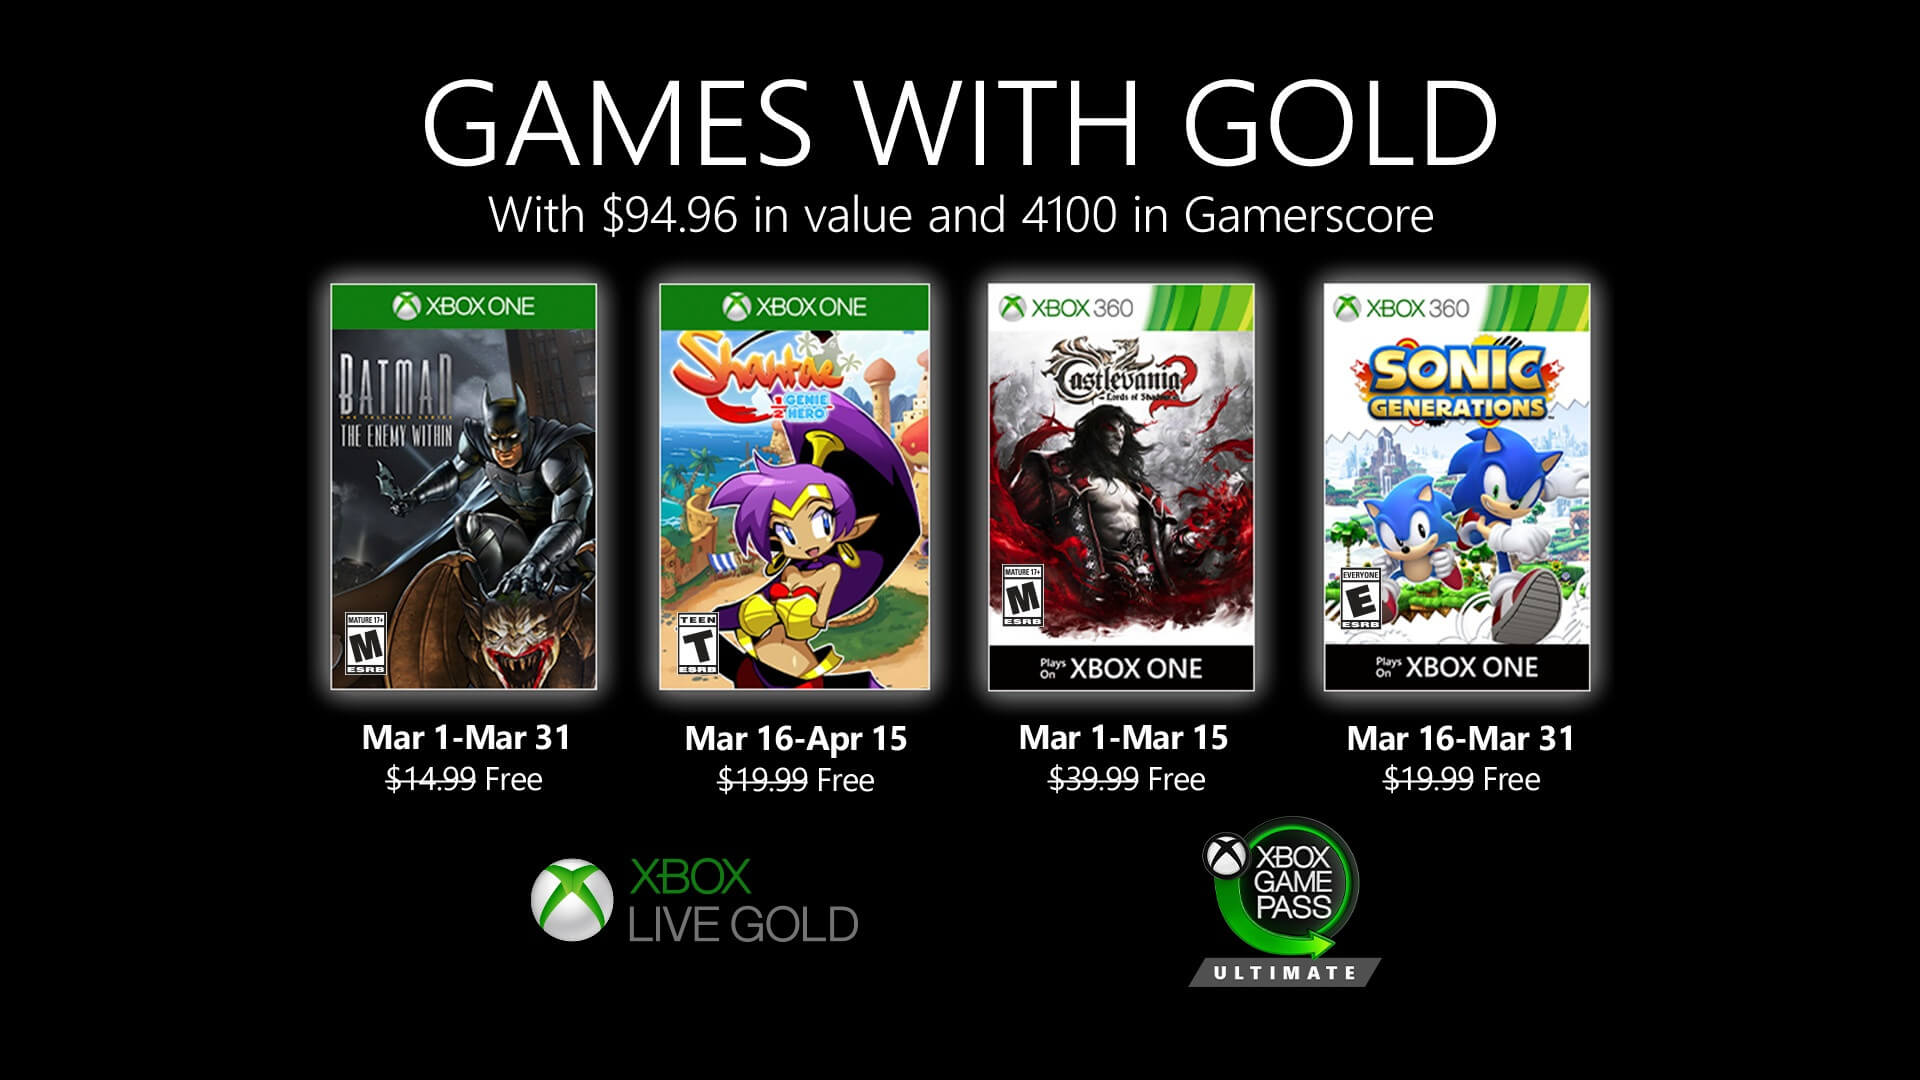 March 2020 Games with Gold Titles Announced